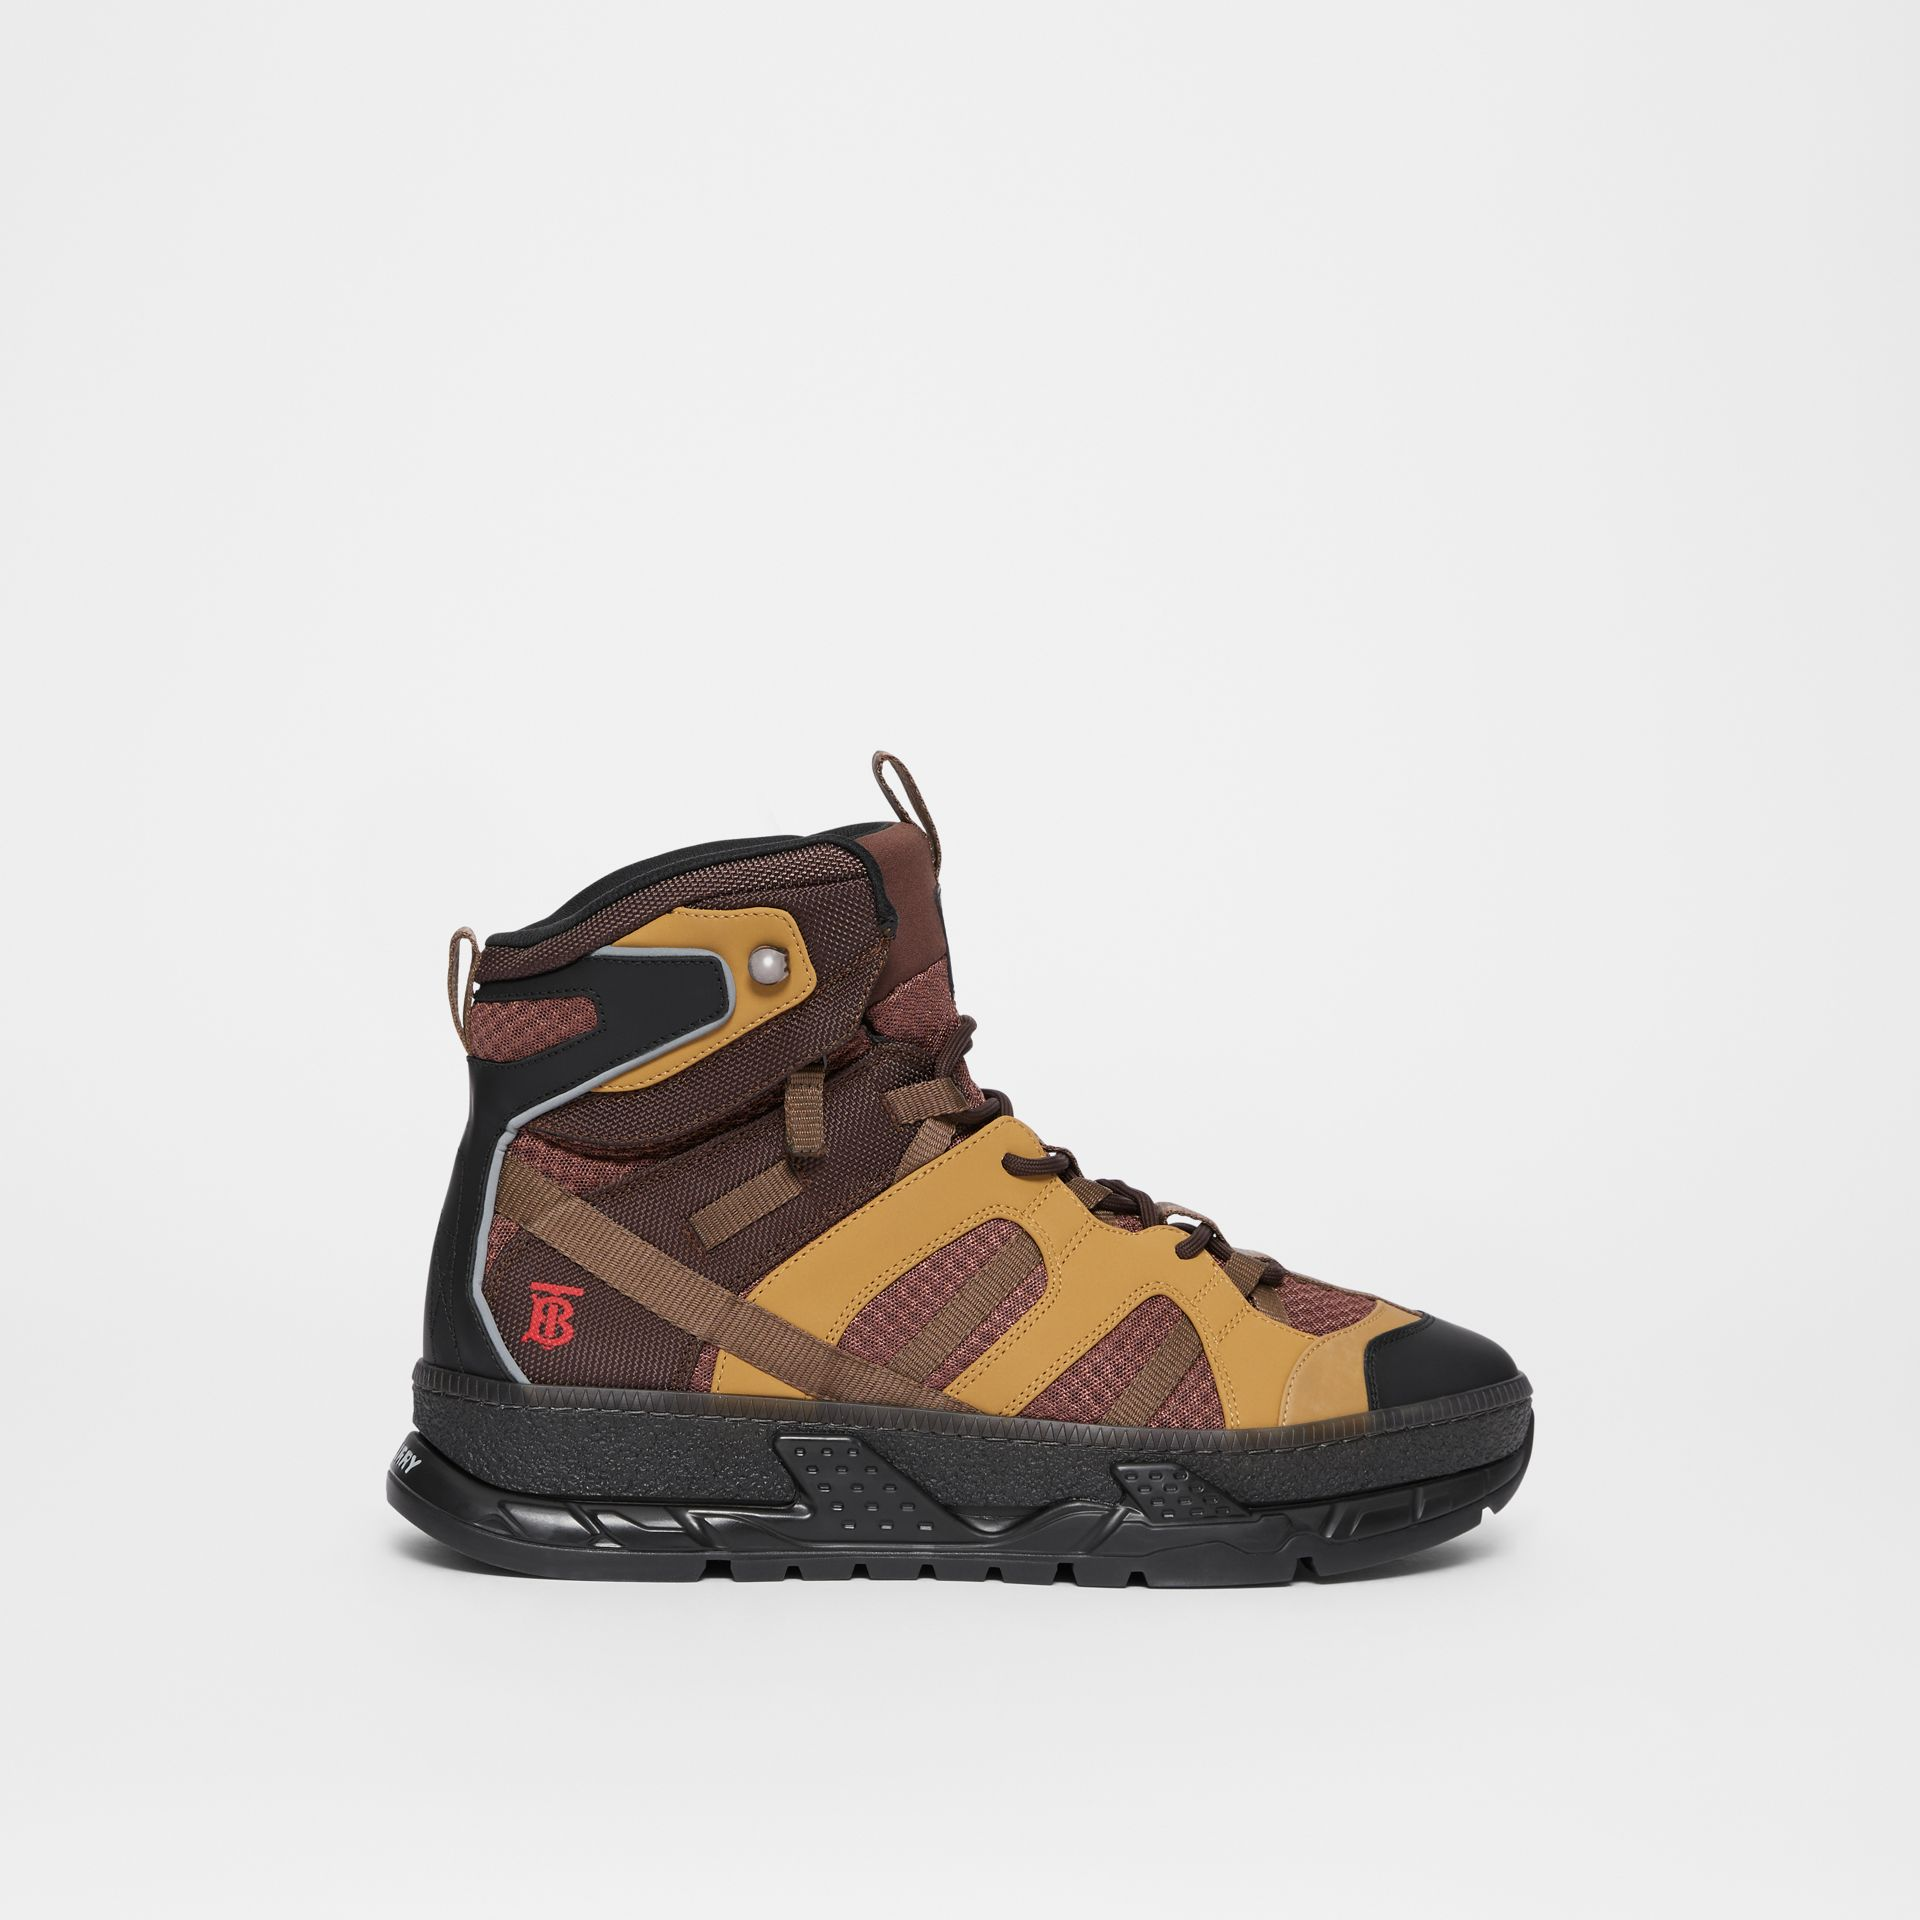 a3f451cb84 Shop Now: Burberry RS5 High-Top Sneaker – The Source | high-top sneakers